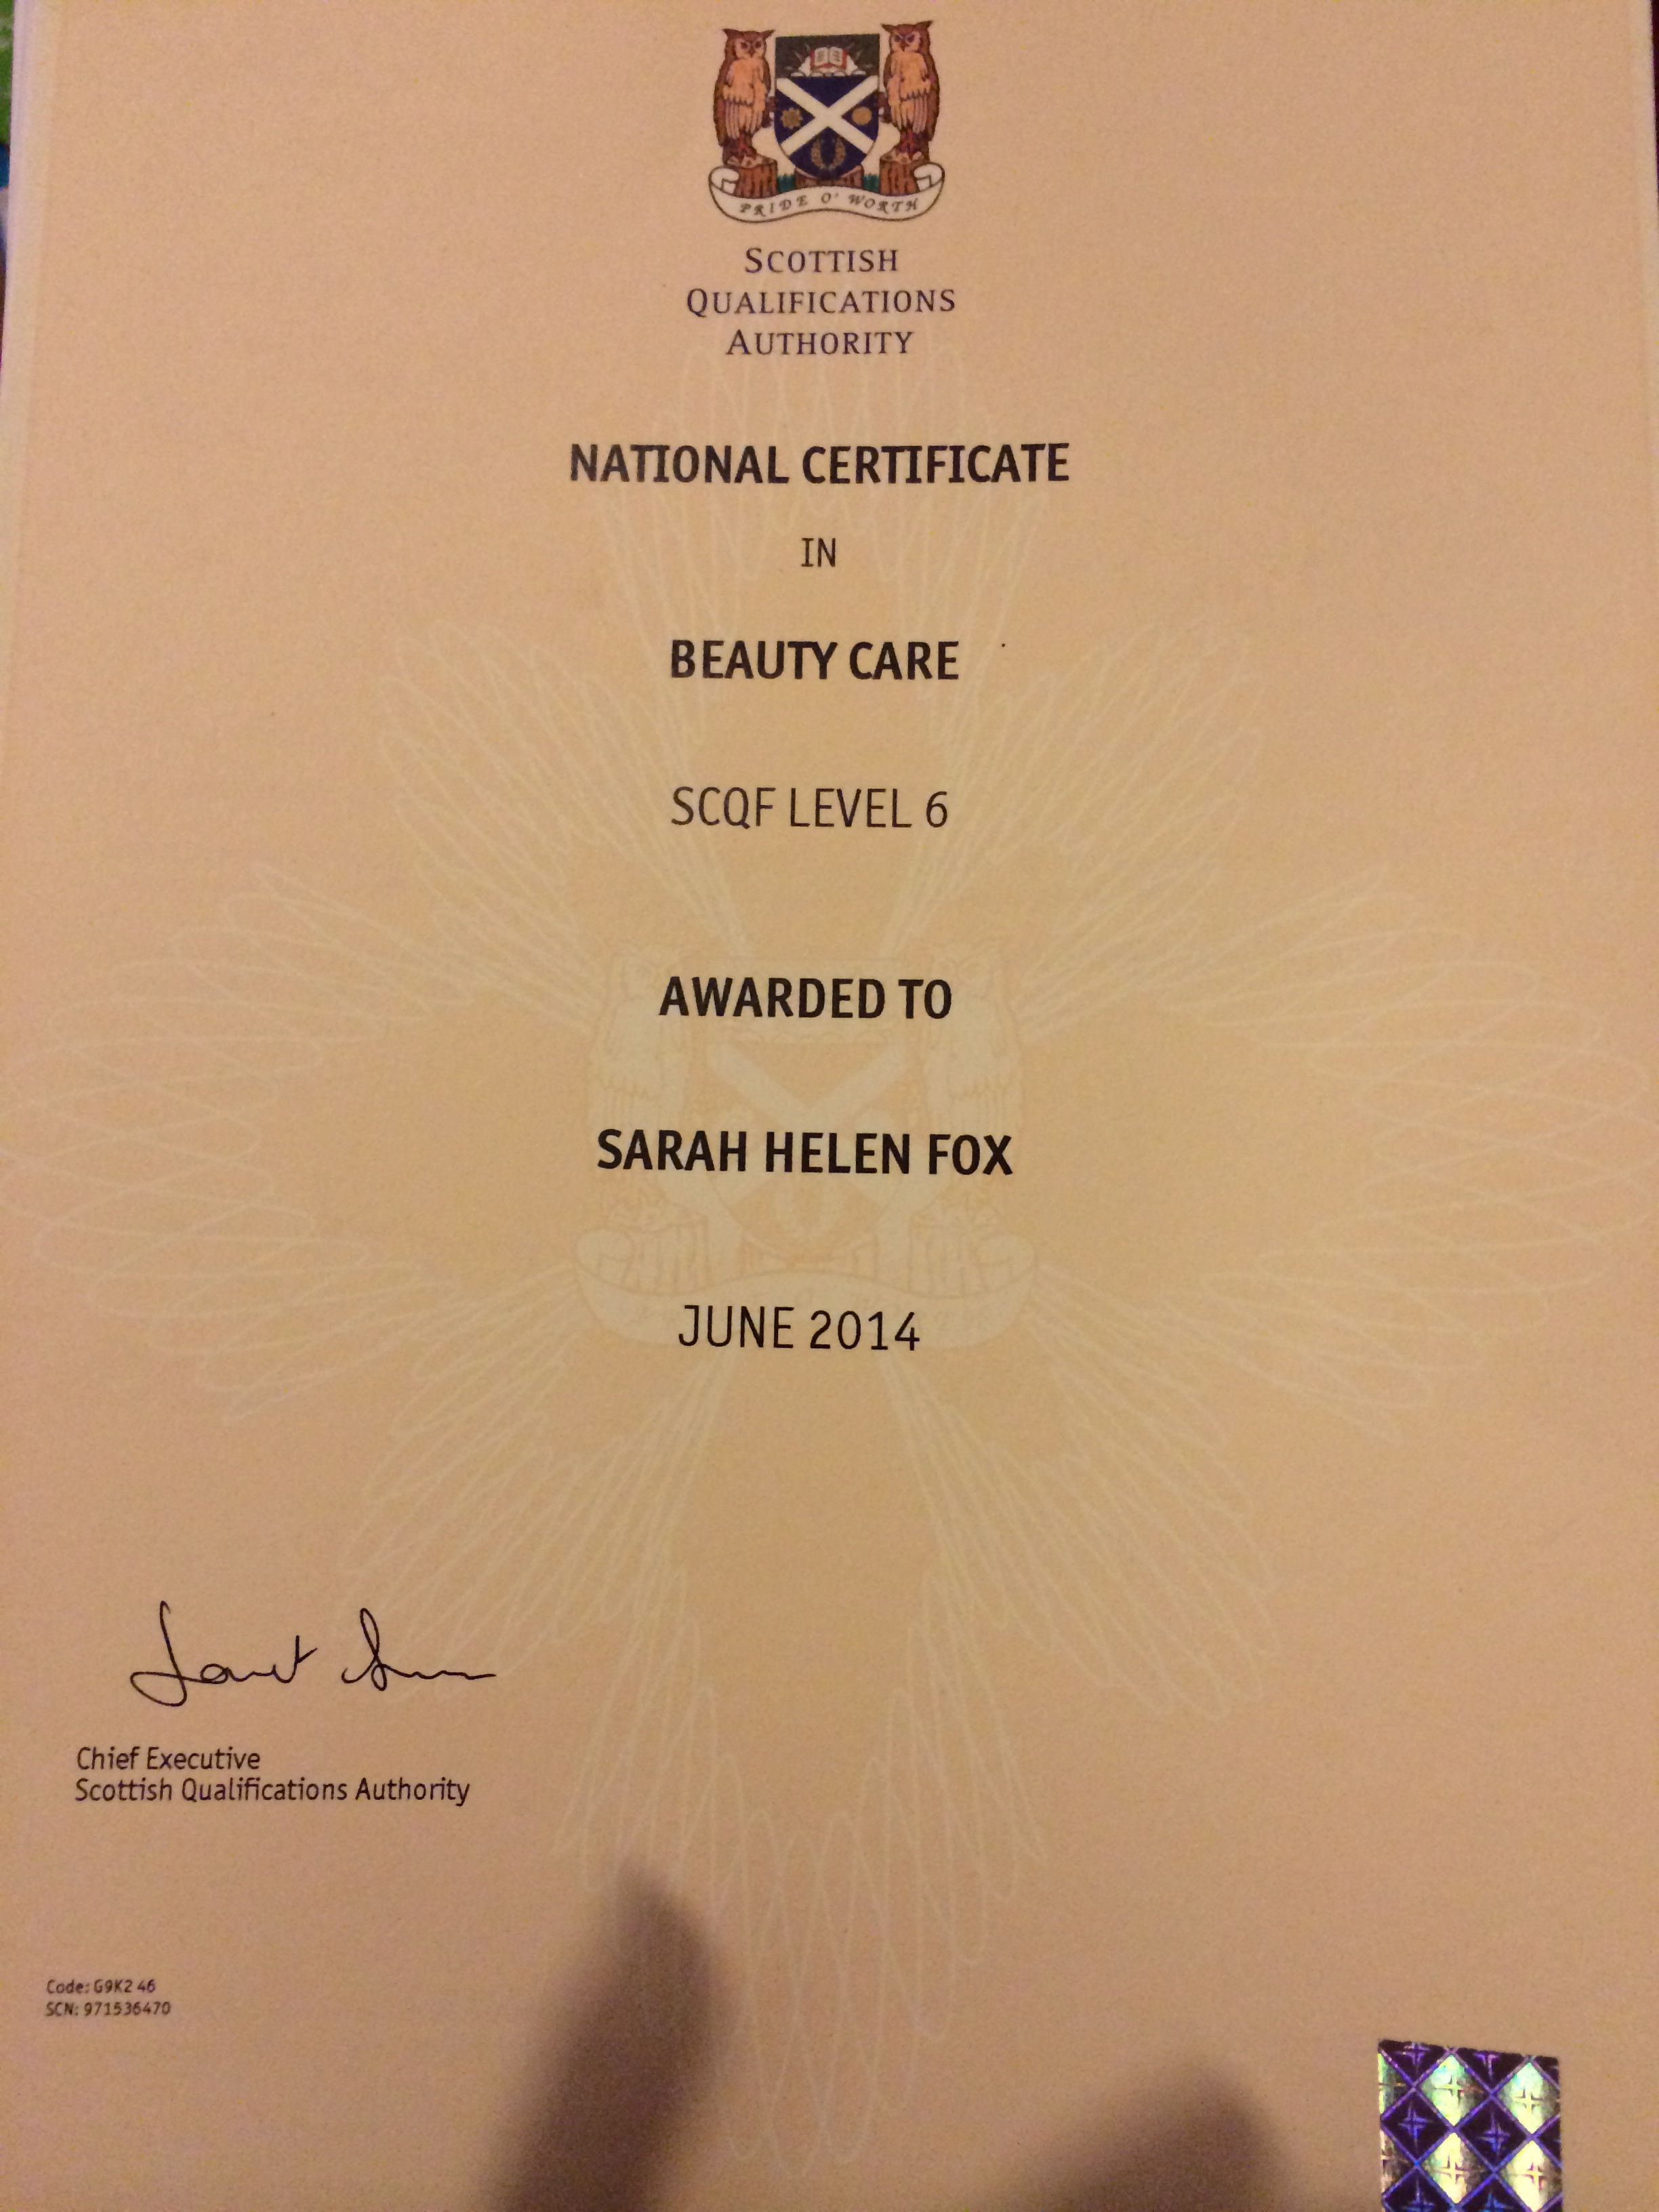 Food hygiene certificates and qualifications pinterest certificate fandeluxe Choice Image